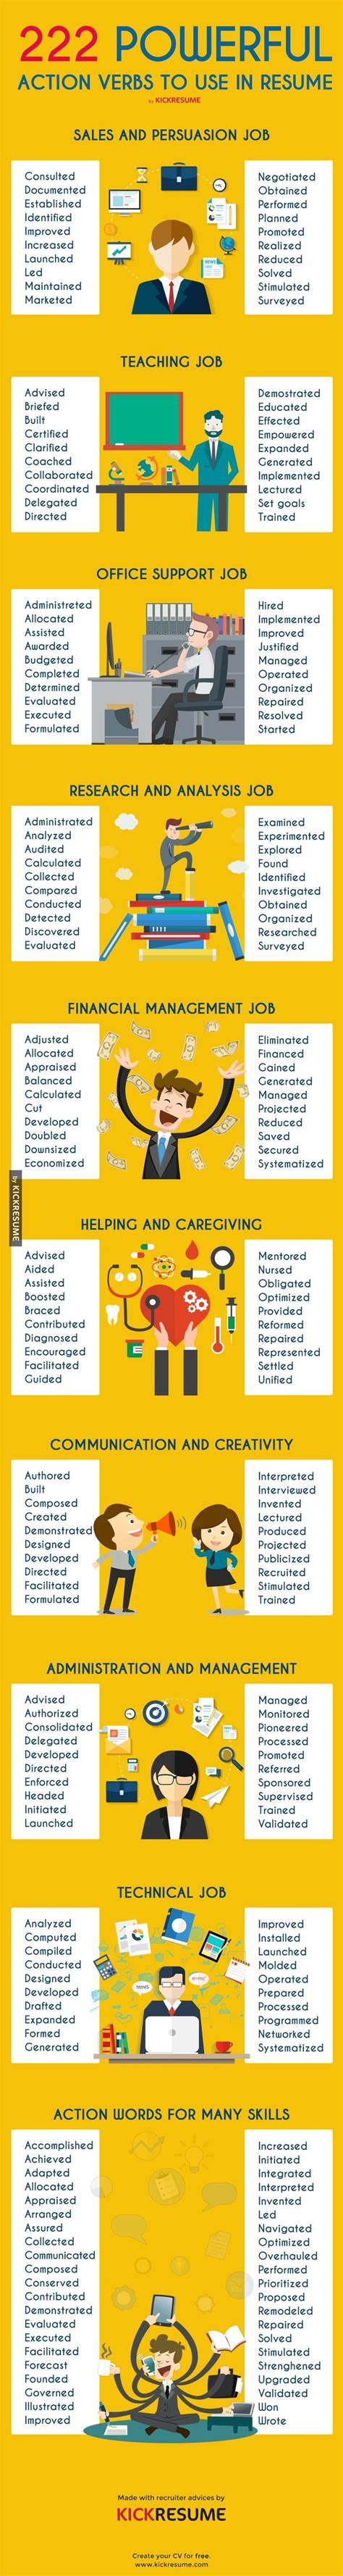 what is action verb awesome collection of good verbs use on resumes